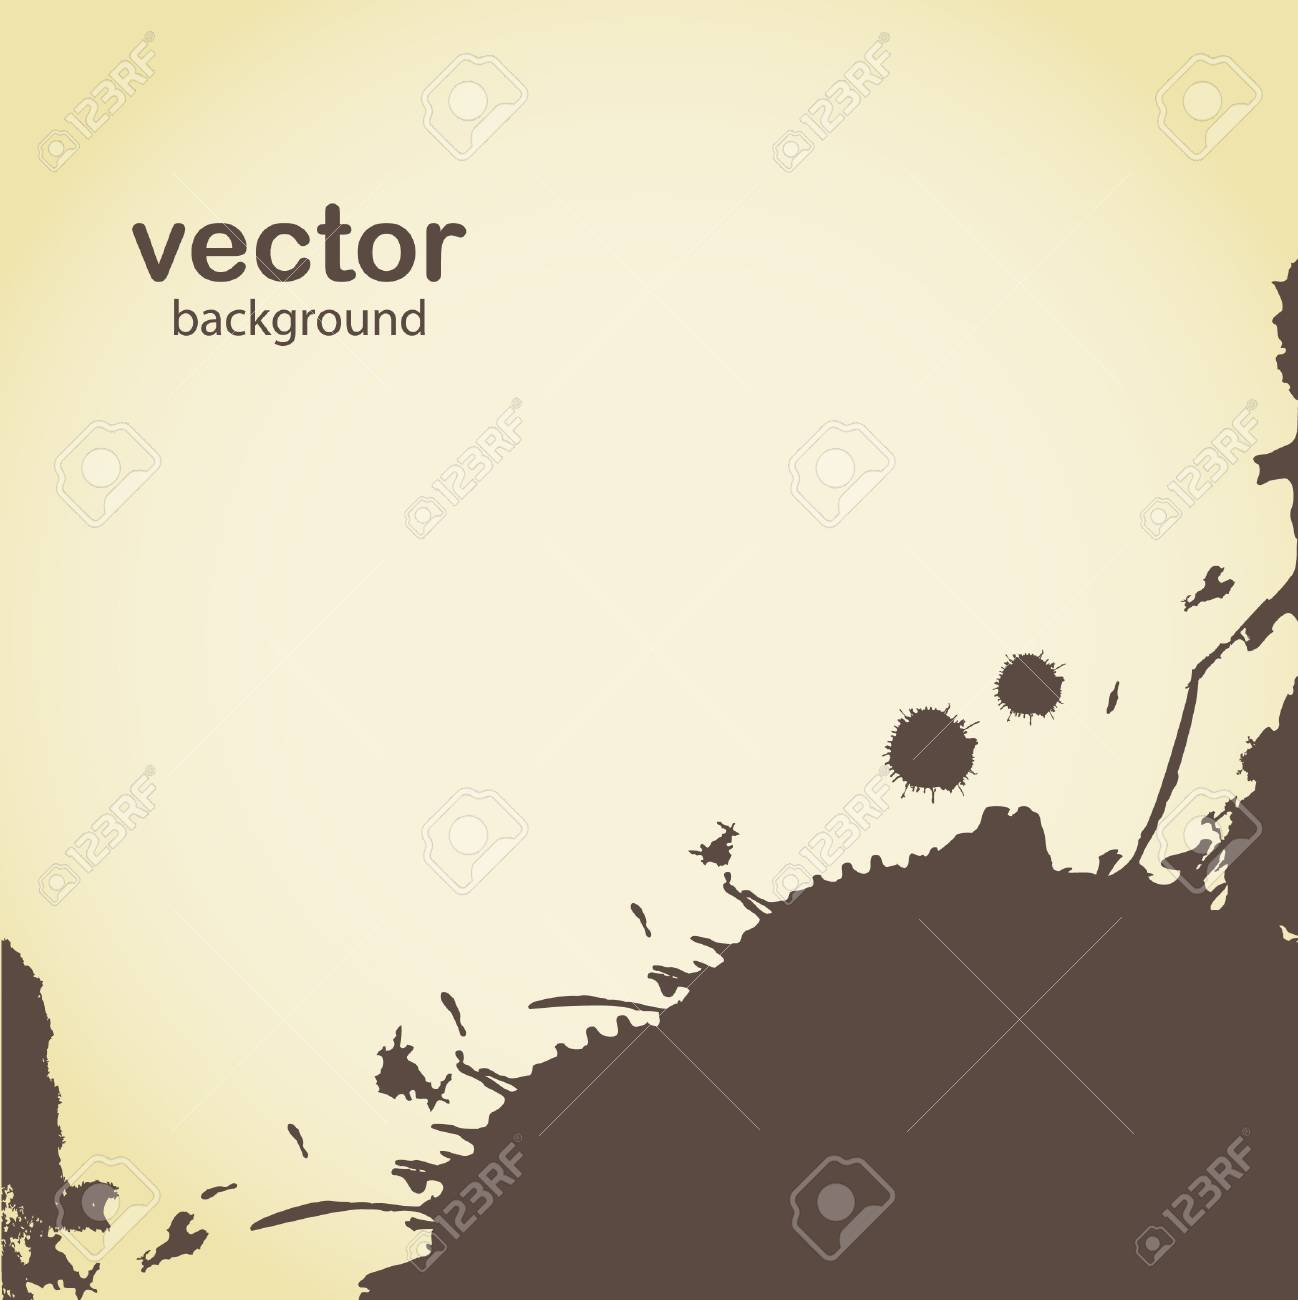 Grunge background.   illustration Stock Vector - 7707043